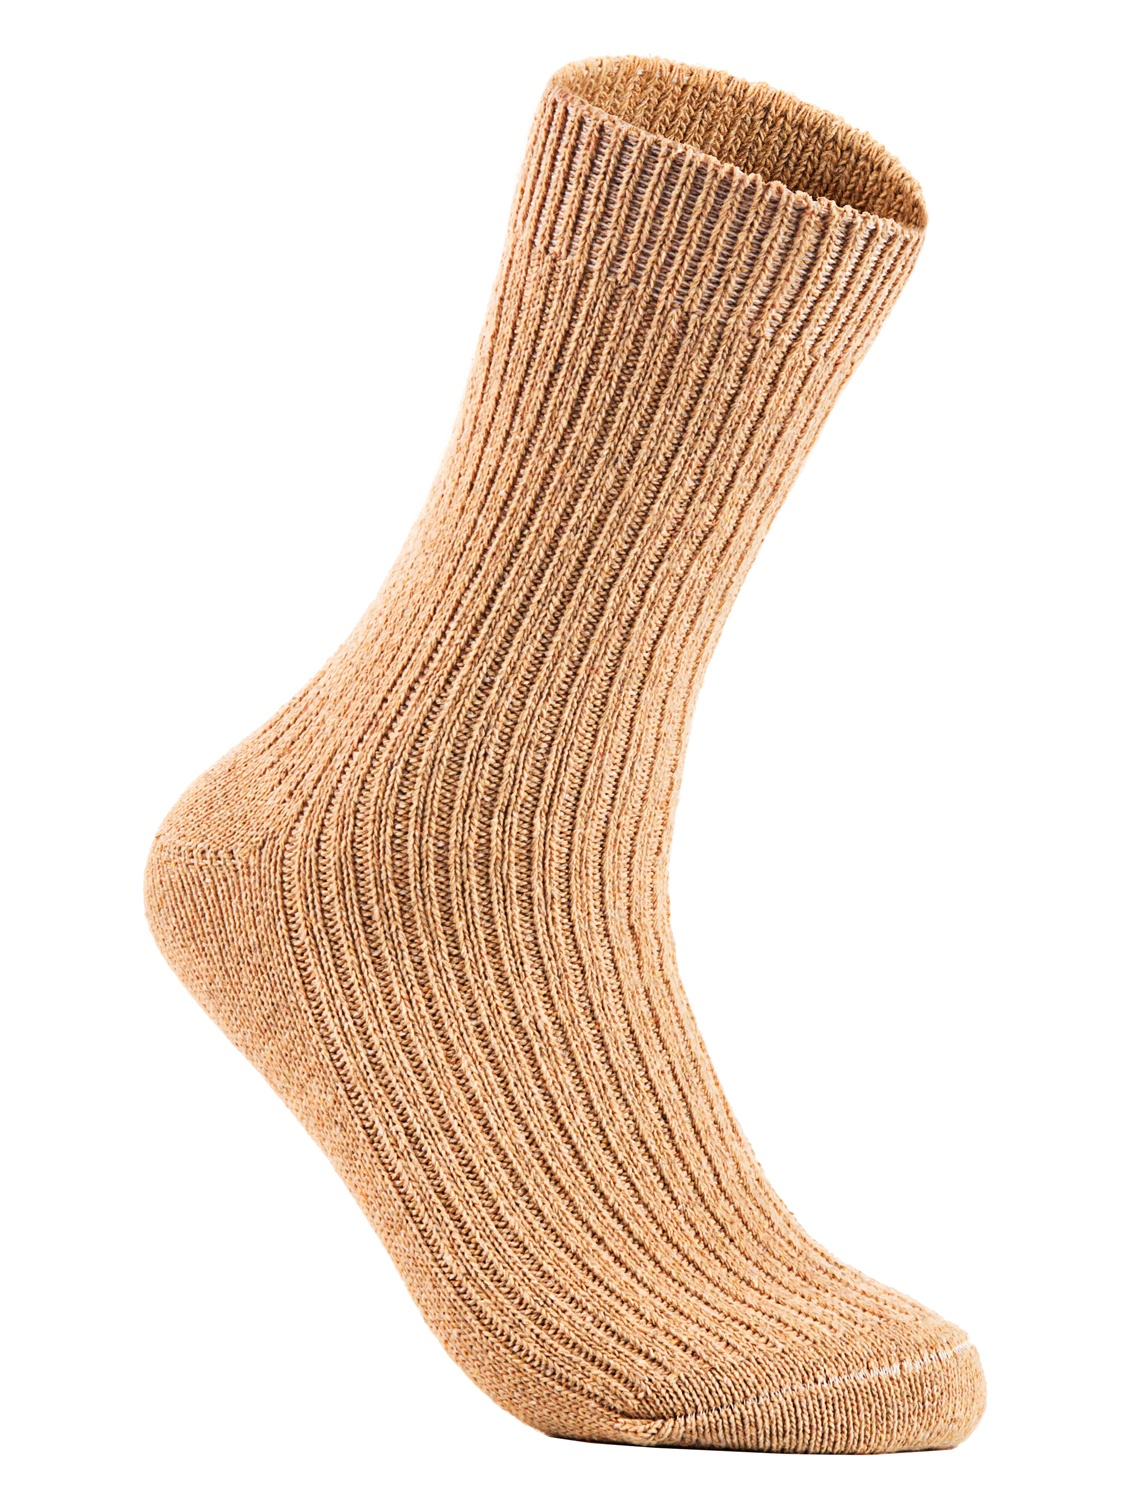 Lian Style Big Girls 1 Pair Knitted Wool Crew Socks FS03 Size XL (Navy Blue)